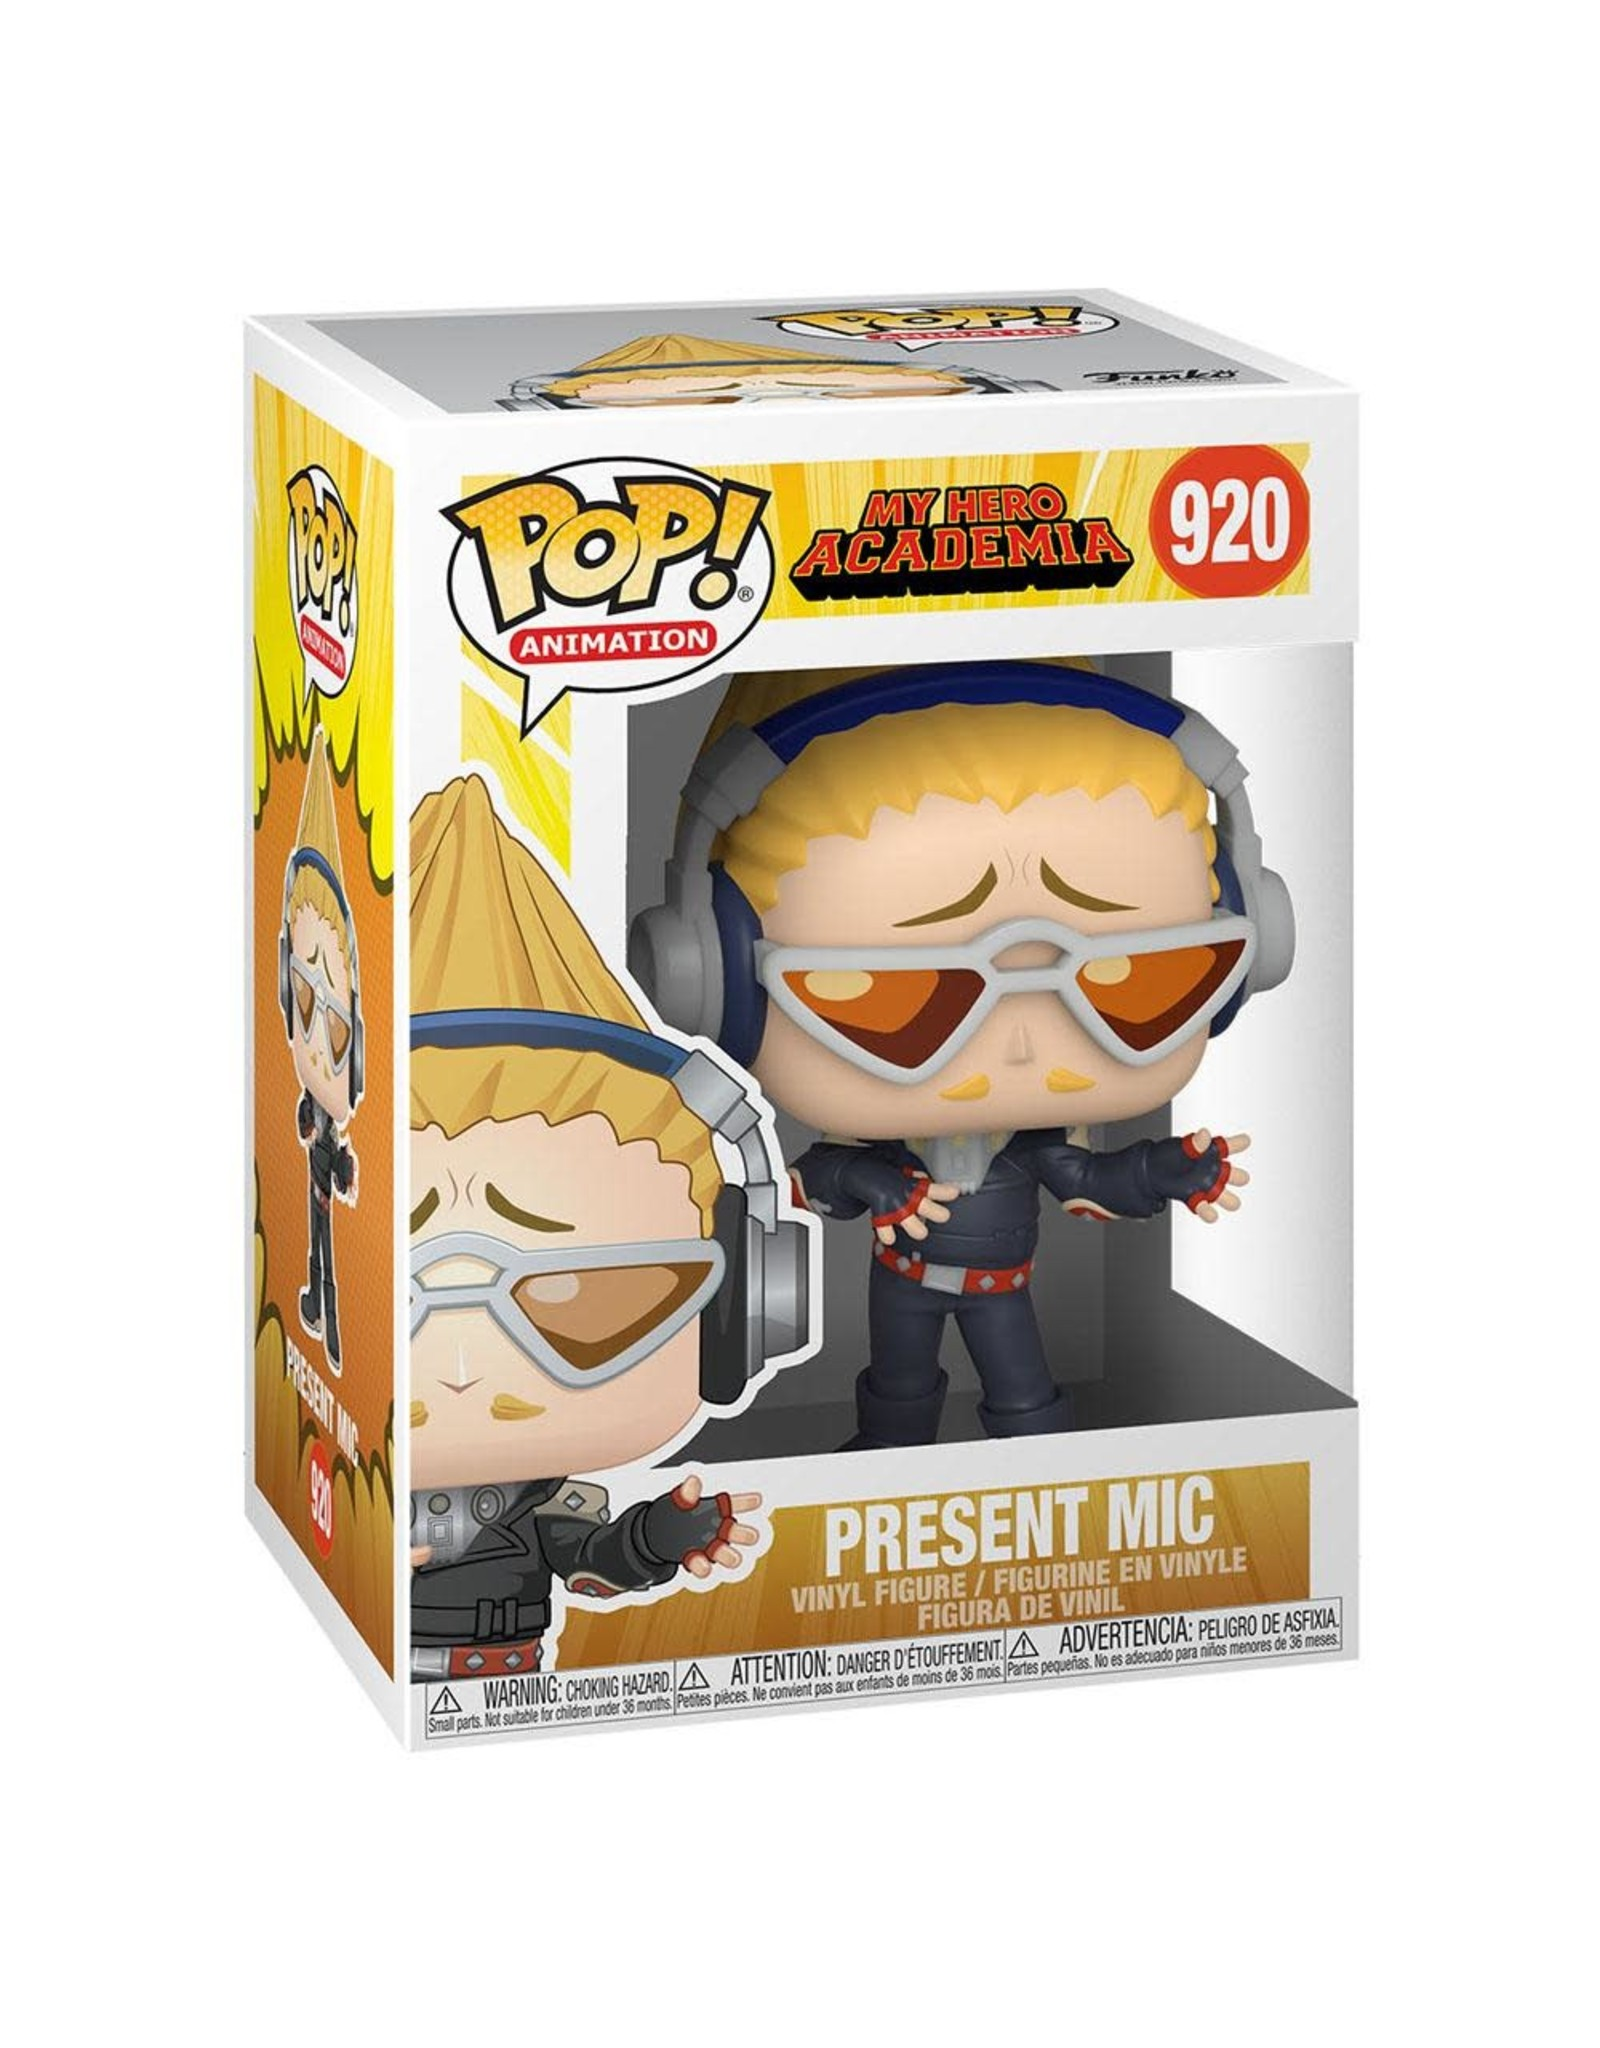 My Hero Academia - Present Mic - Funko Pop! Animation 920